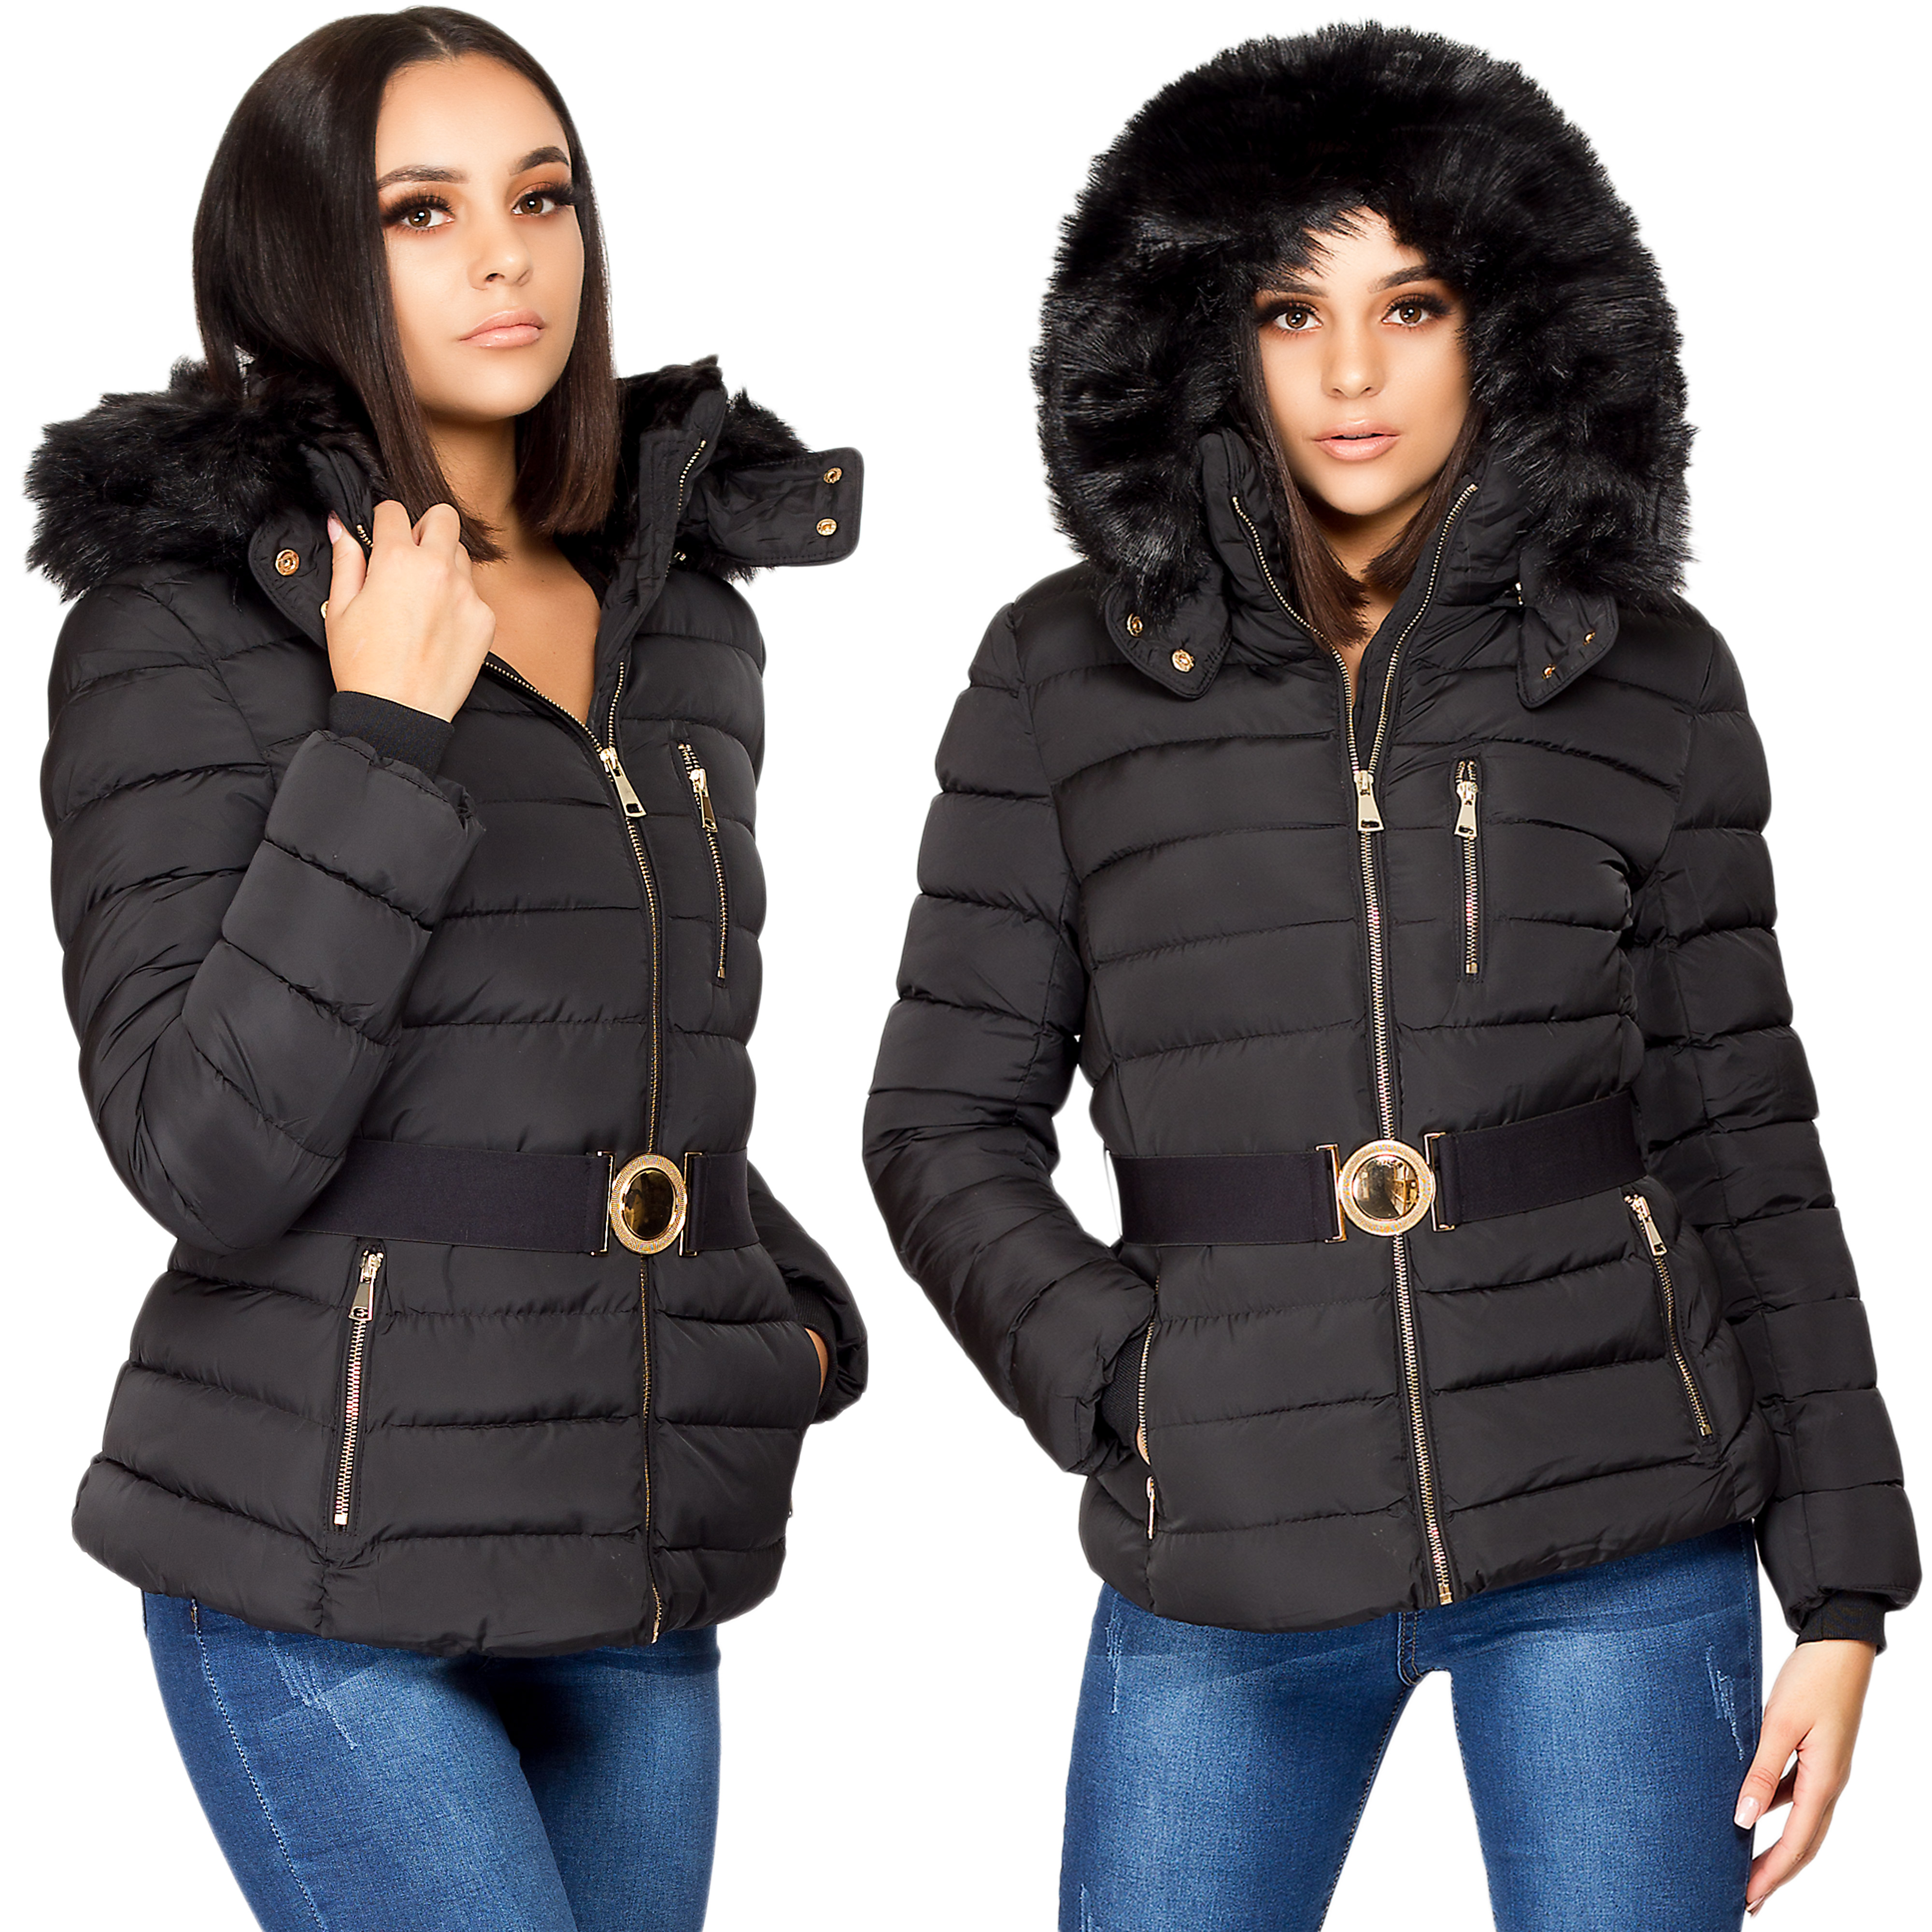 52dc64424 Details about Womens Ladies Quilted Puffer Bubble Padded Jacket Fur Hooded  Zip Warm Thick Coat